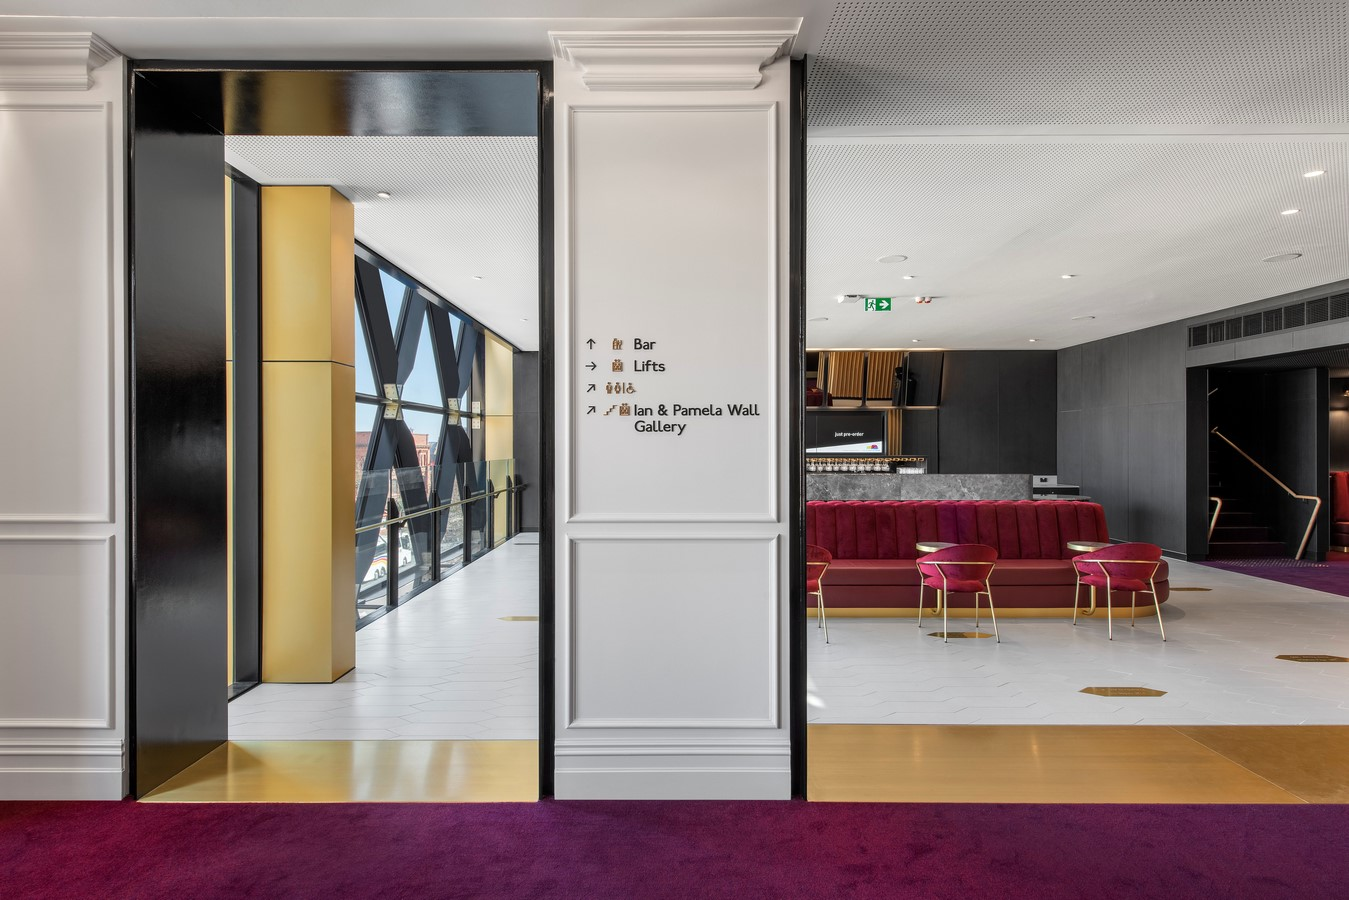 Her Majesty_s Theatre by Cox Architecture - Sheet3